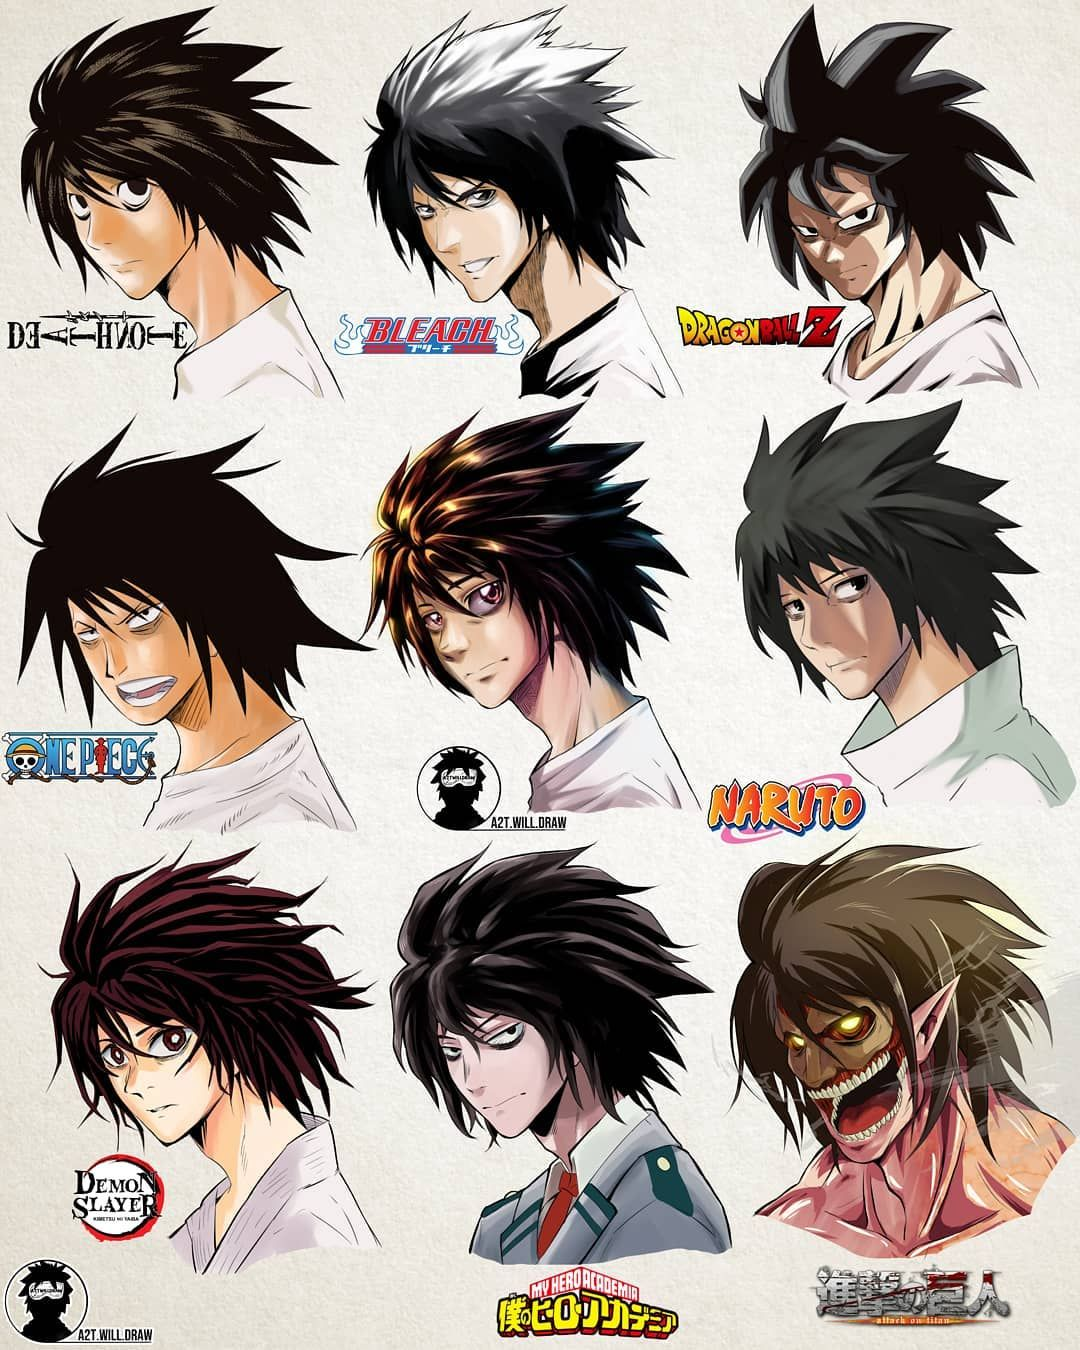 L In Different Manga Styles By A2t Will Draw Personagens De Anime L Death Pixar Desenhos